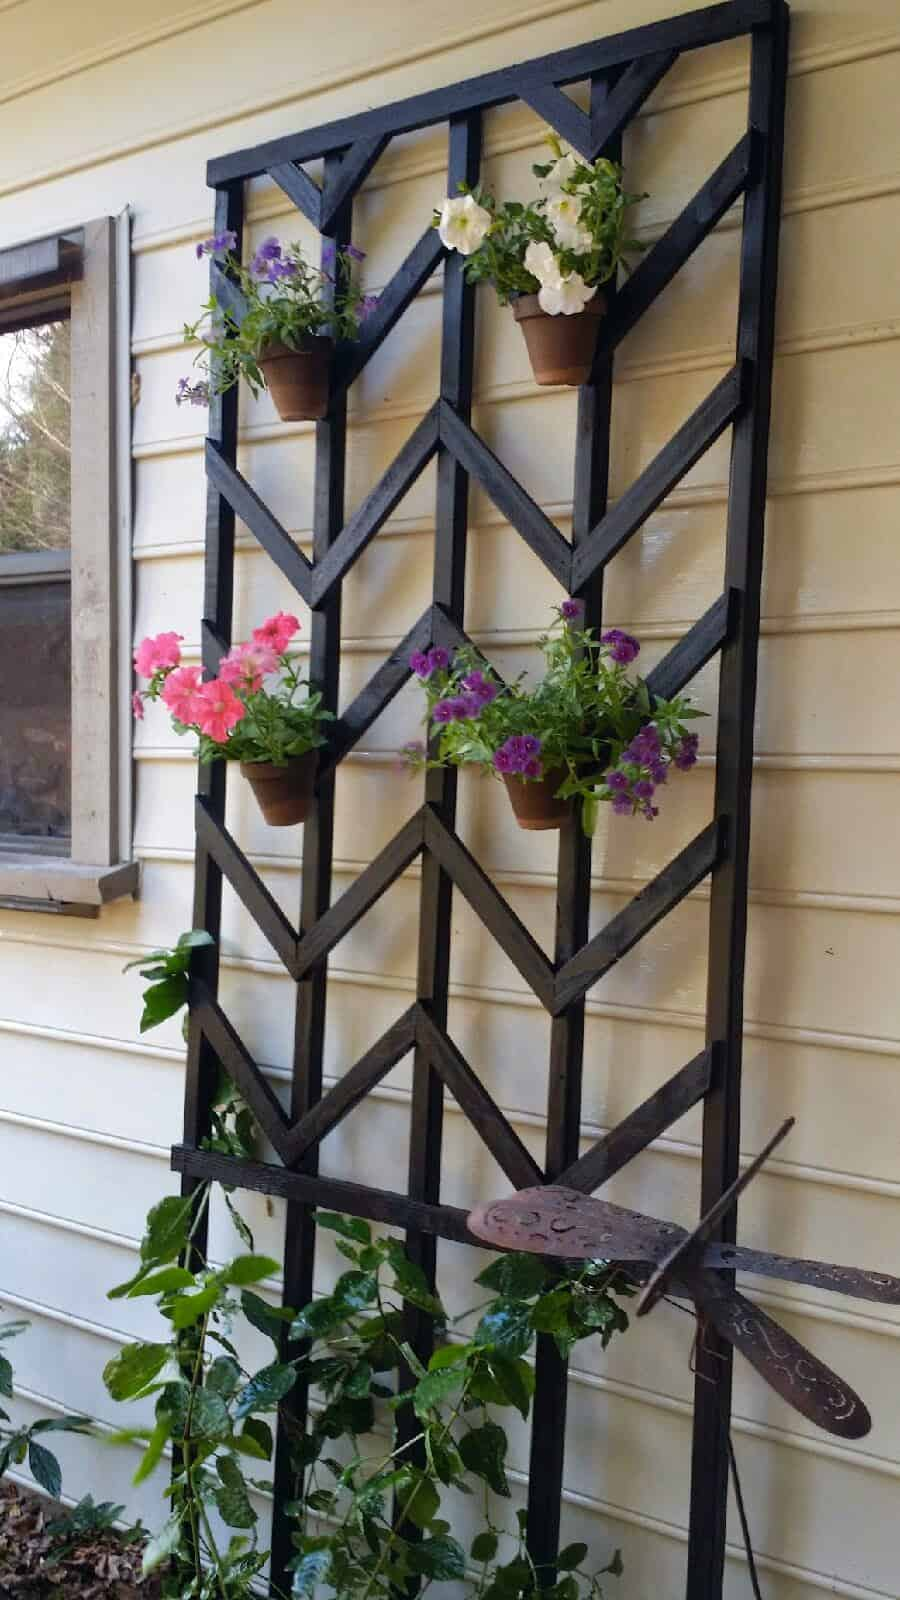 hang-flower-pots-on-a-painted-chevron-diy-lattice-Easter-Avenue-Co-on-@Remodelaholic